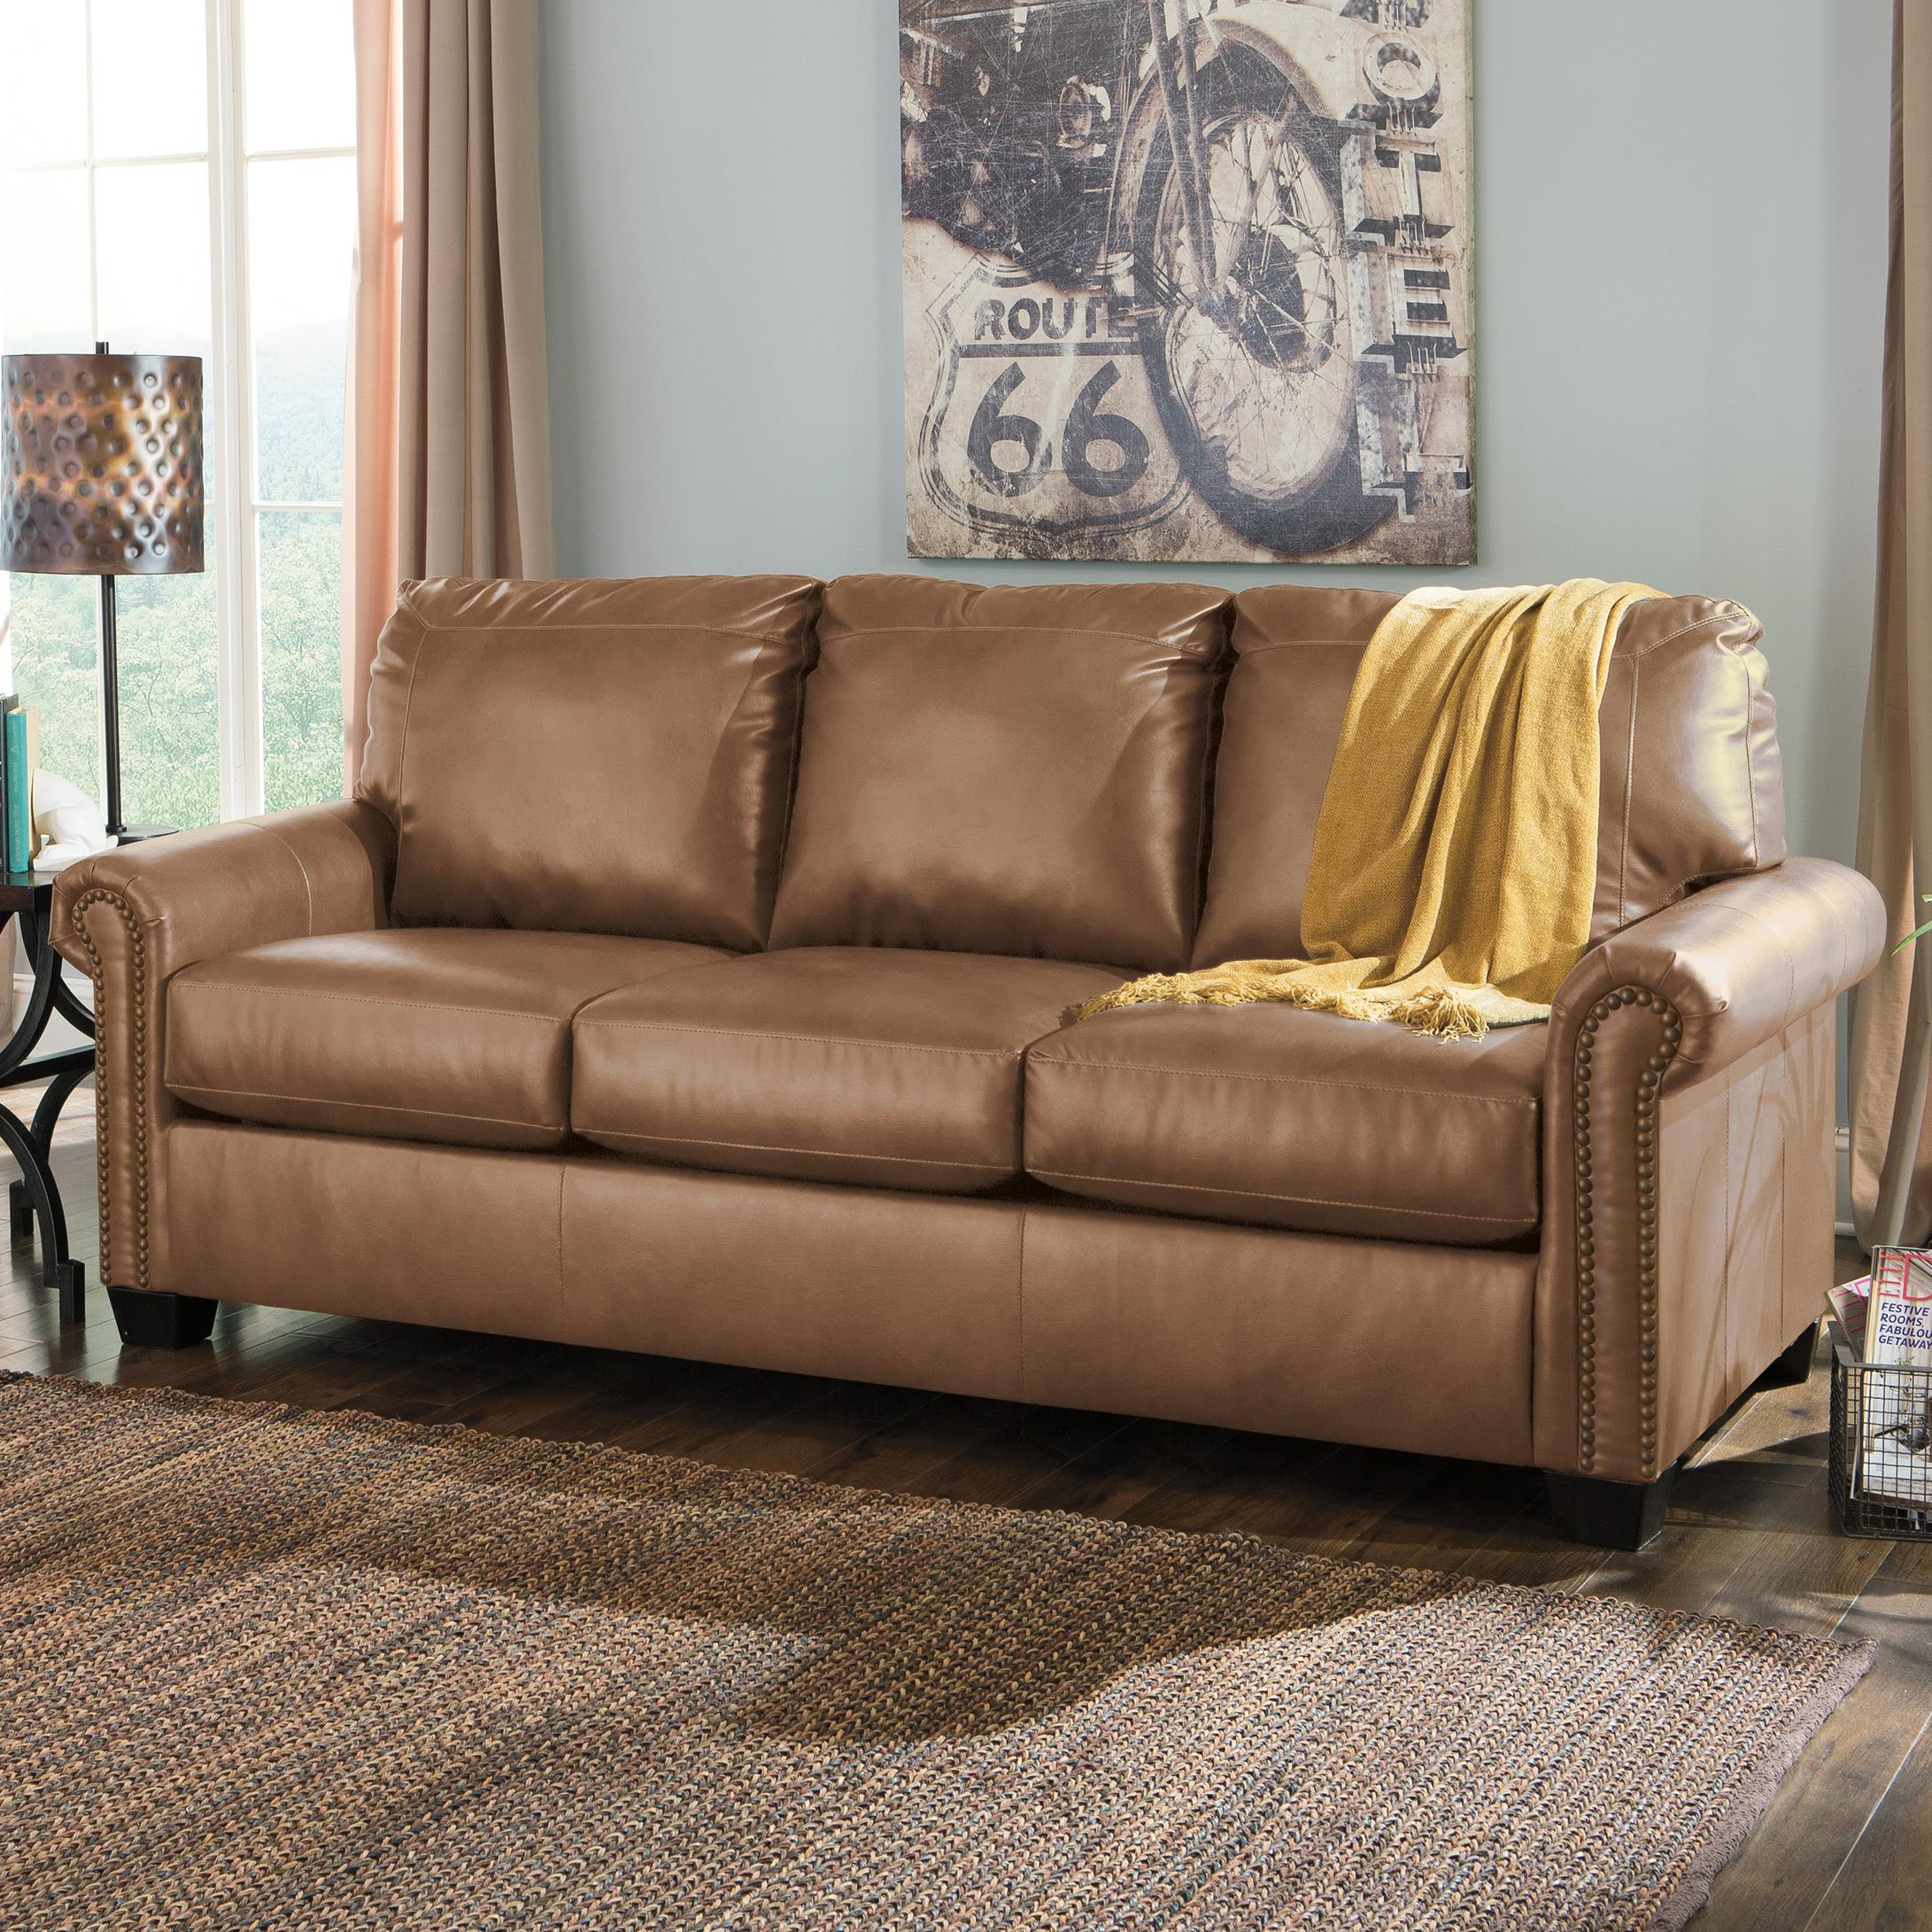 Signature Design By Ashley Lottie DuraBlend® Queen Sofa Sleeper   Item  Number: 3800239